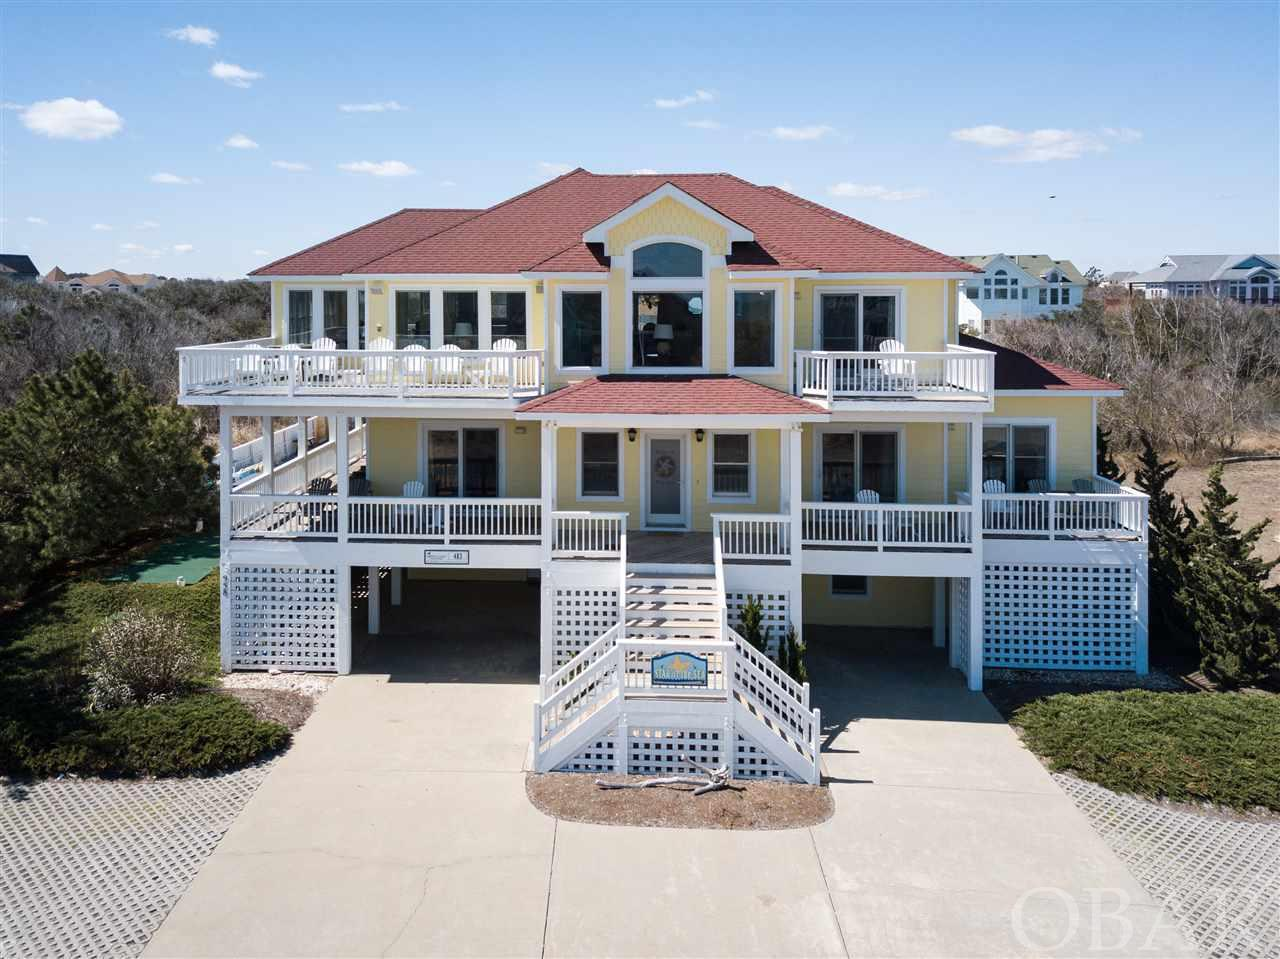 958 Lighthouse Drive,Corolla,NC 27927,9 Bedrooms Bedrooms,8 BathroomsBathrooms,Residential,Lighthouse Drive,99815